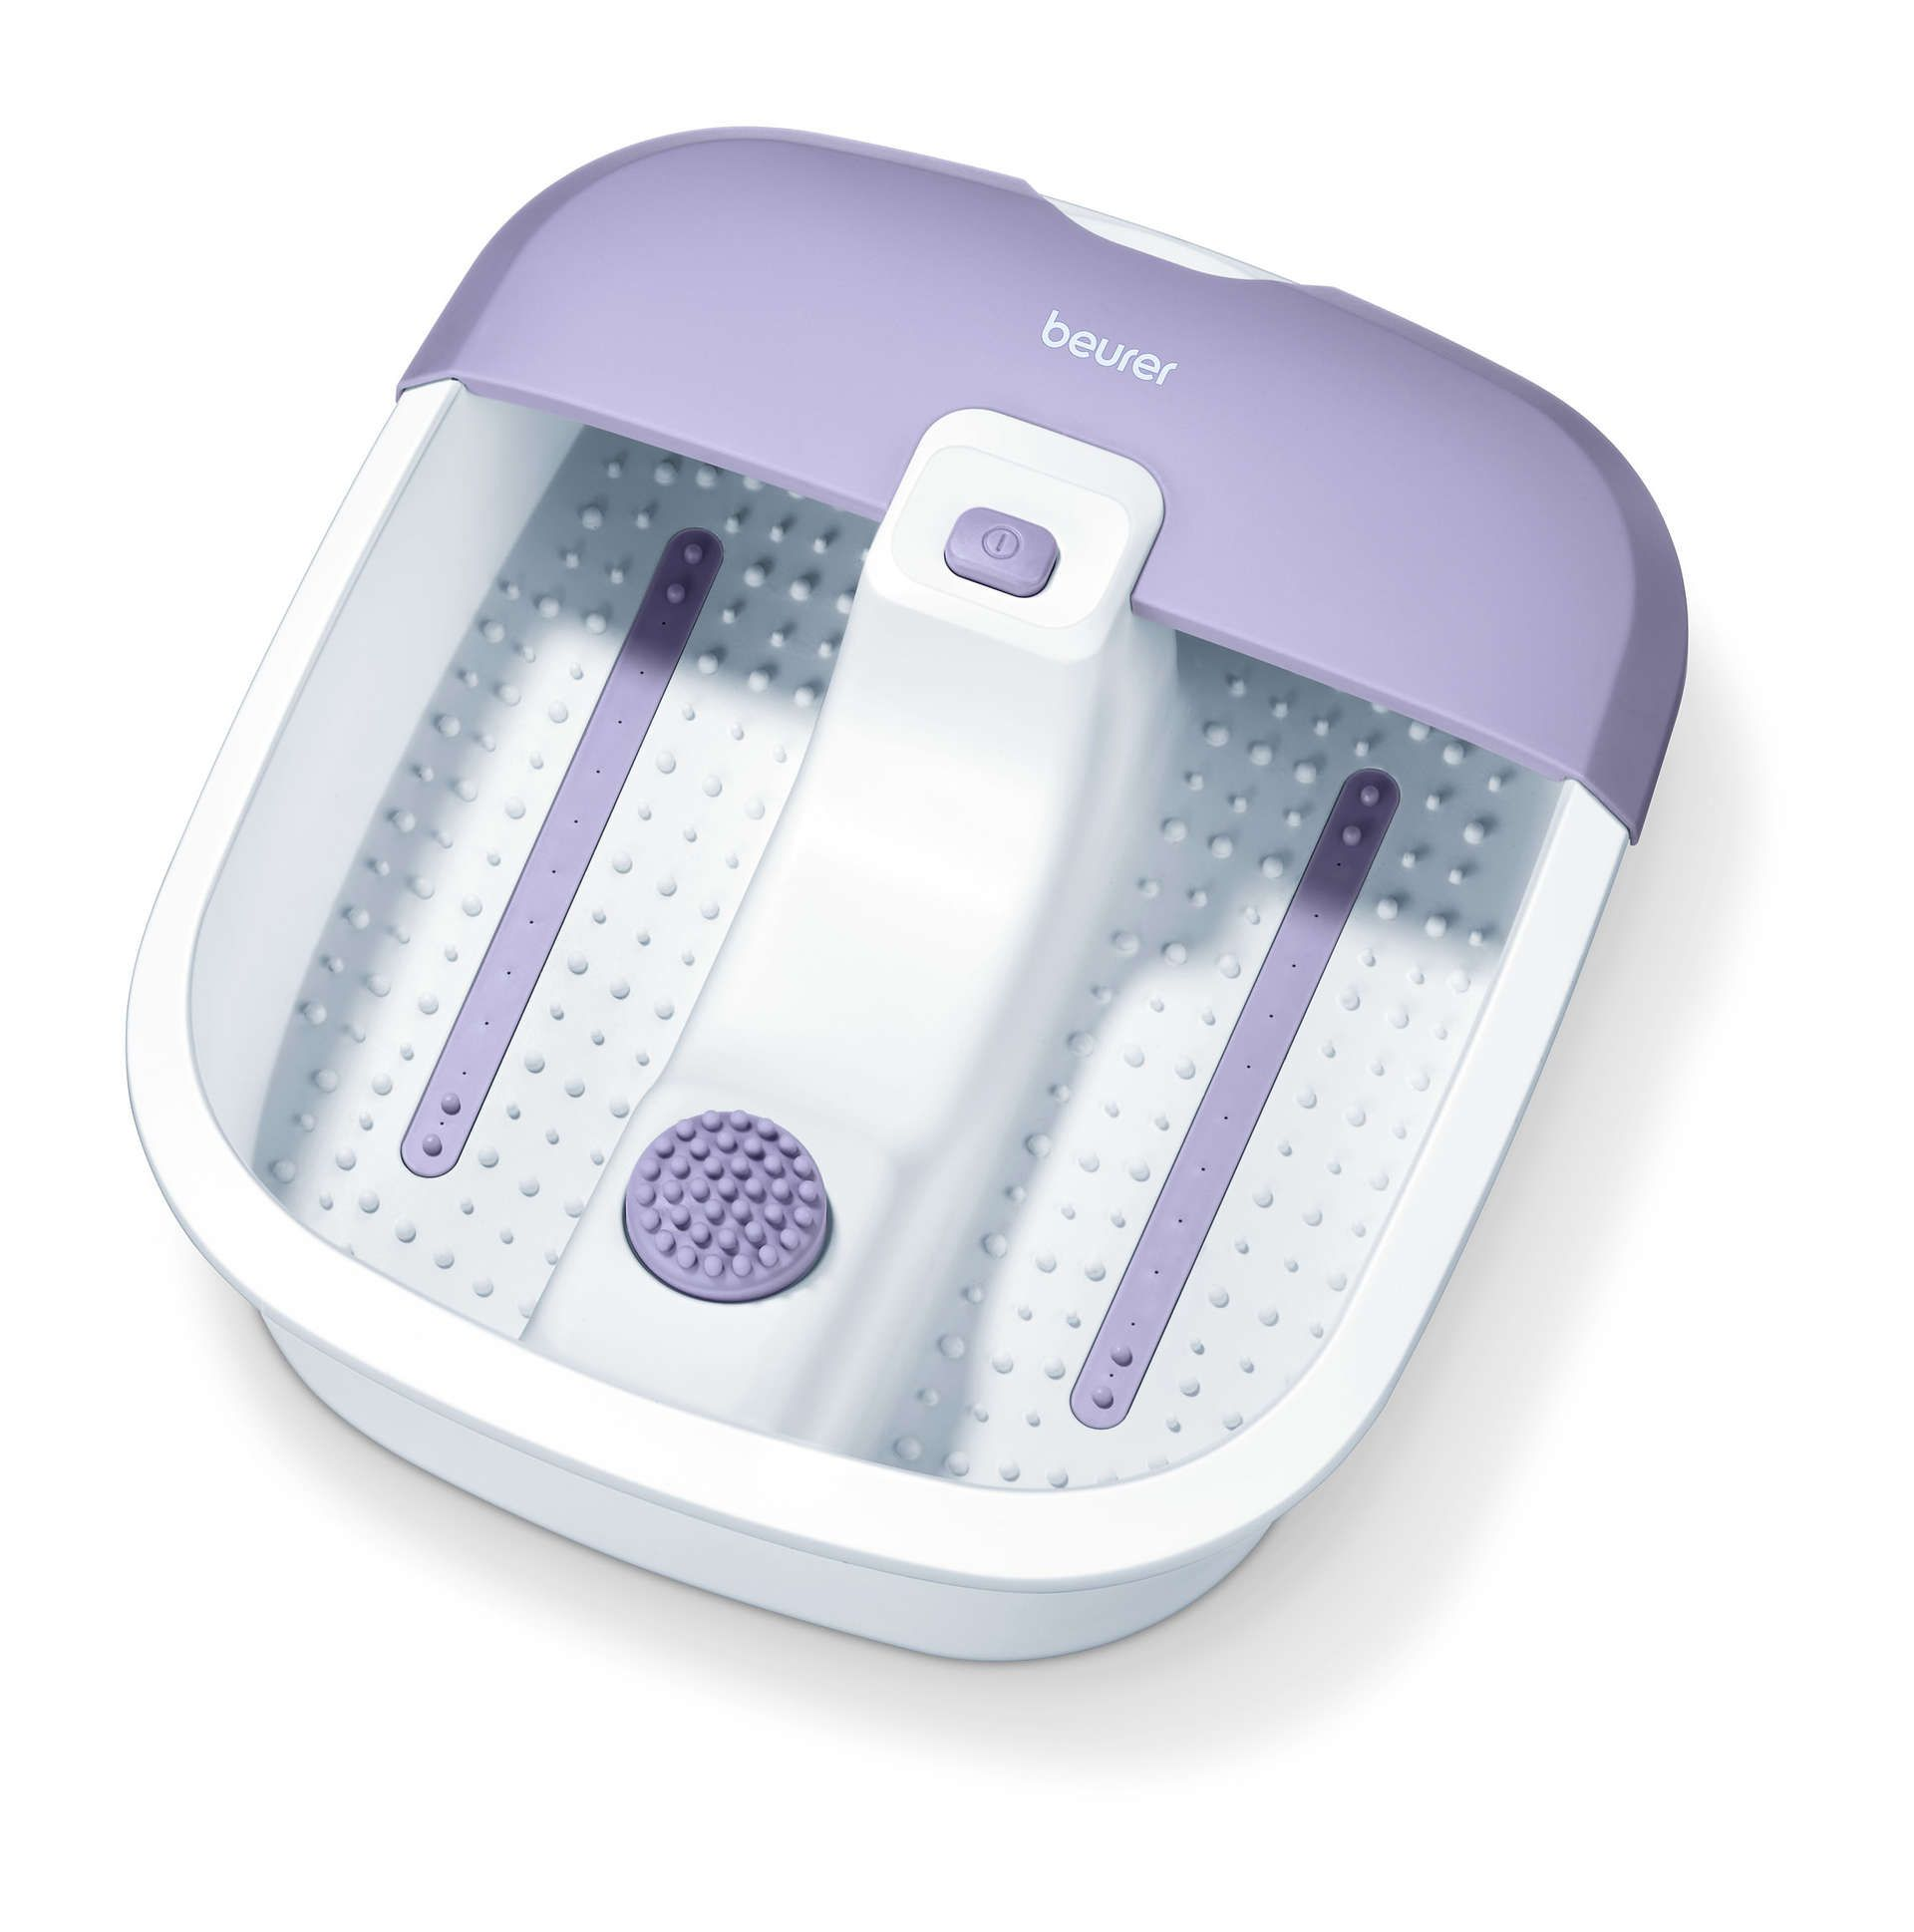 beurer-foot-spa-massager-fb-12-kuwait-online